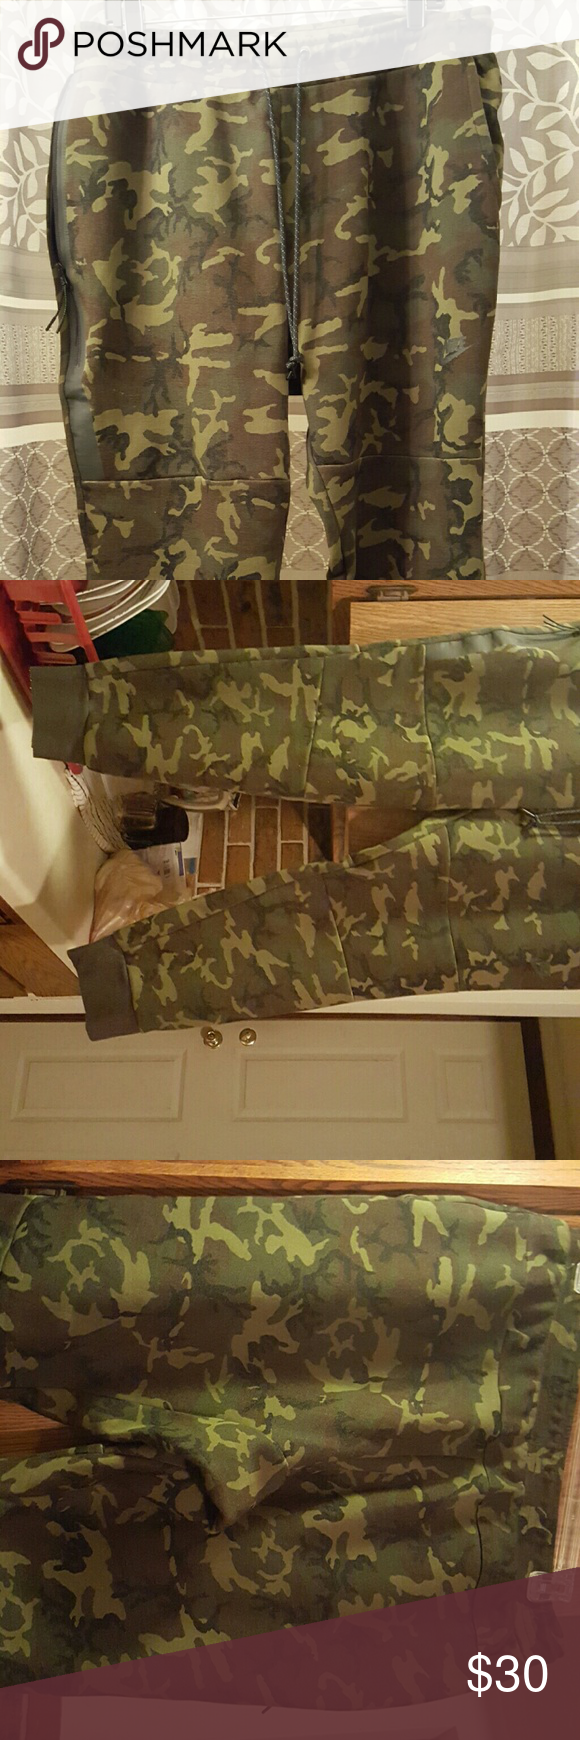 Mens jogger/sweats Army look Nike Other